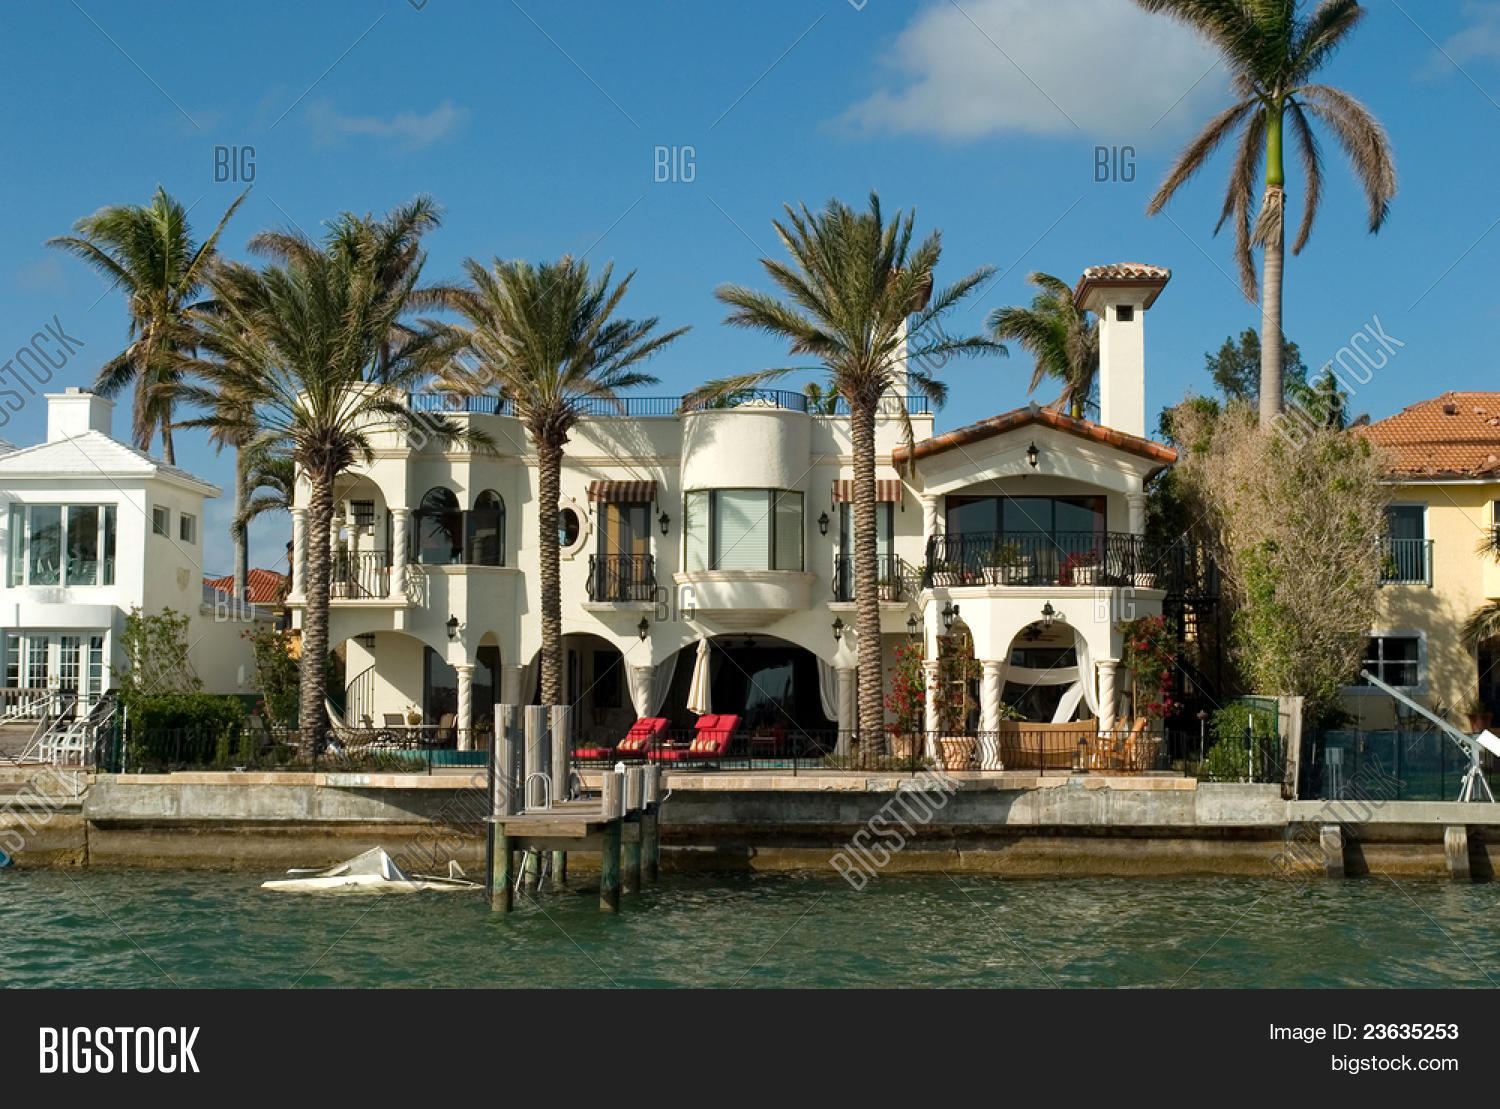 Expensive house by the bay in miami 39 s key biscayne florida for Big houses in miami